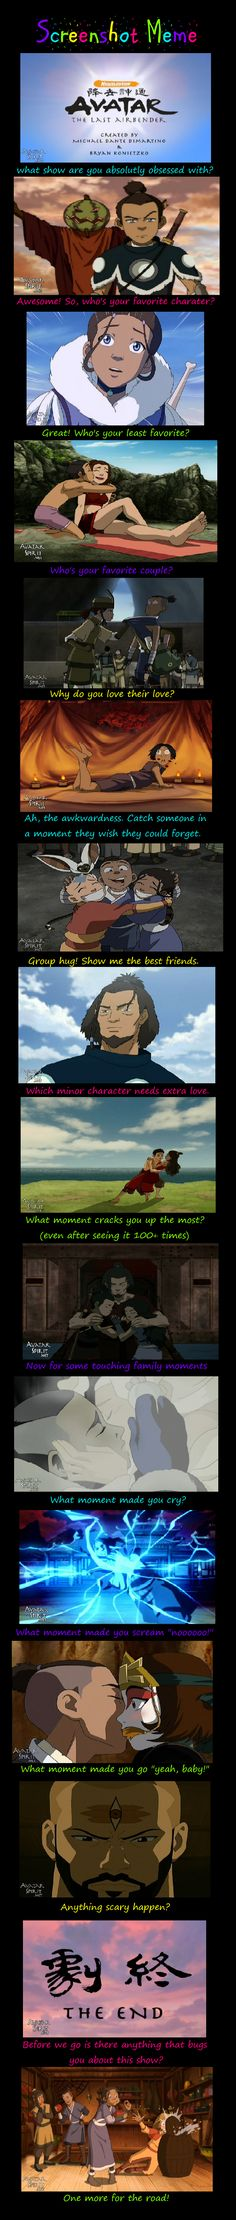 Avatar: The Last Airbender Screenshot Meme by MasterOf4Elements.deviantart.com